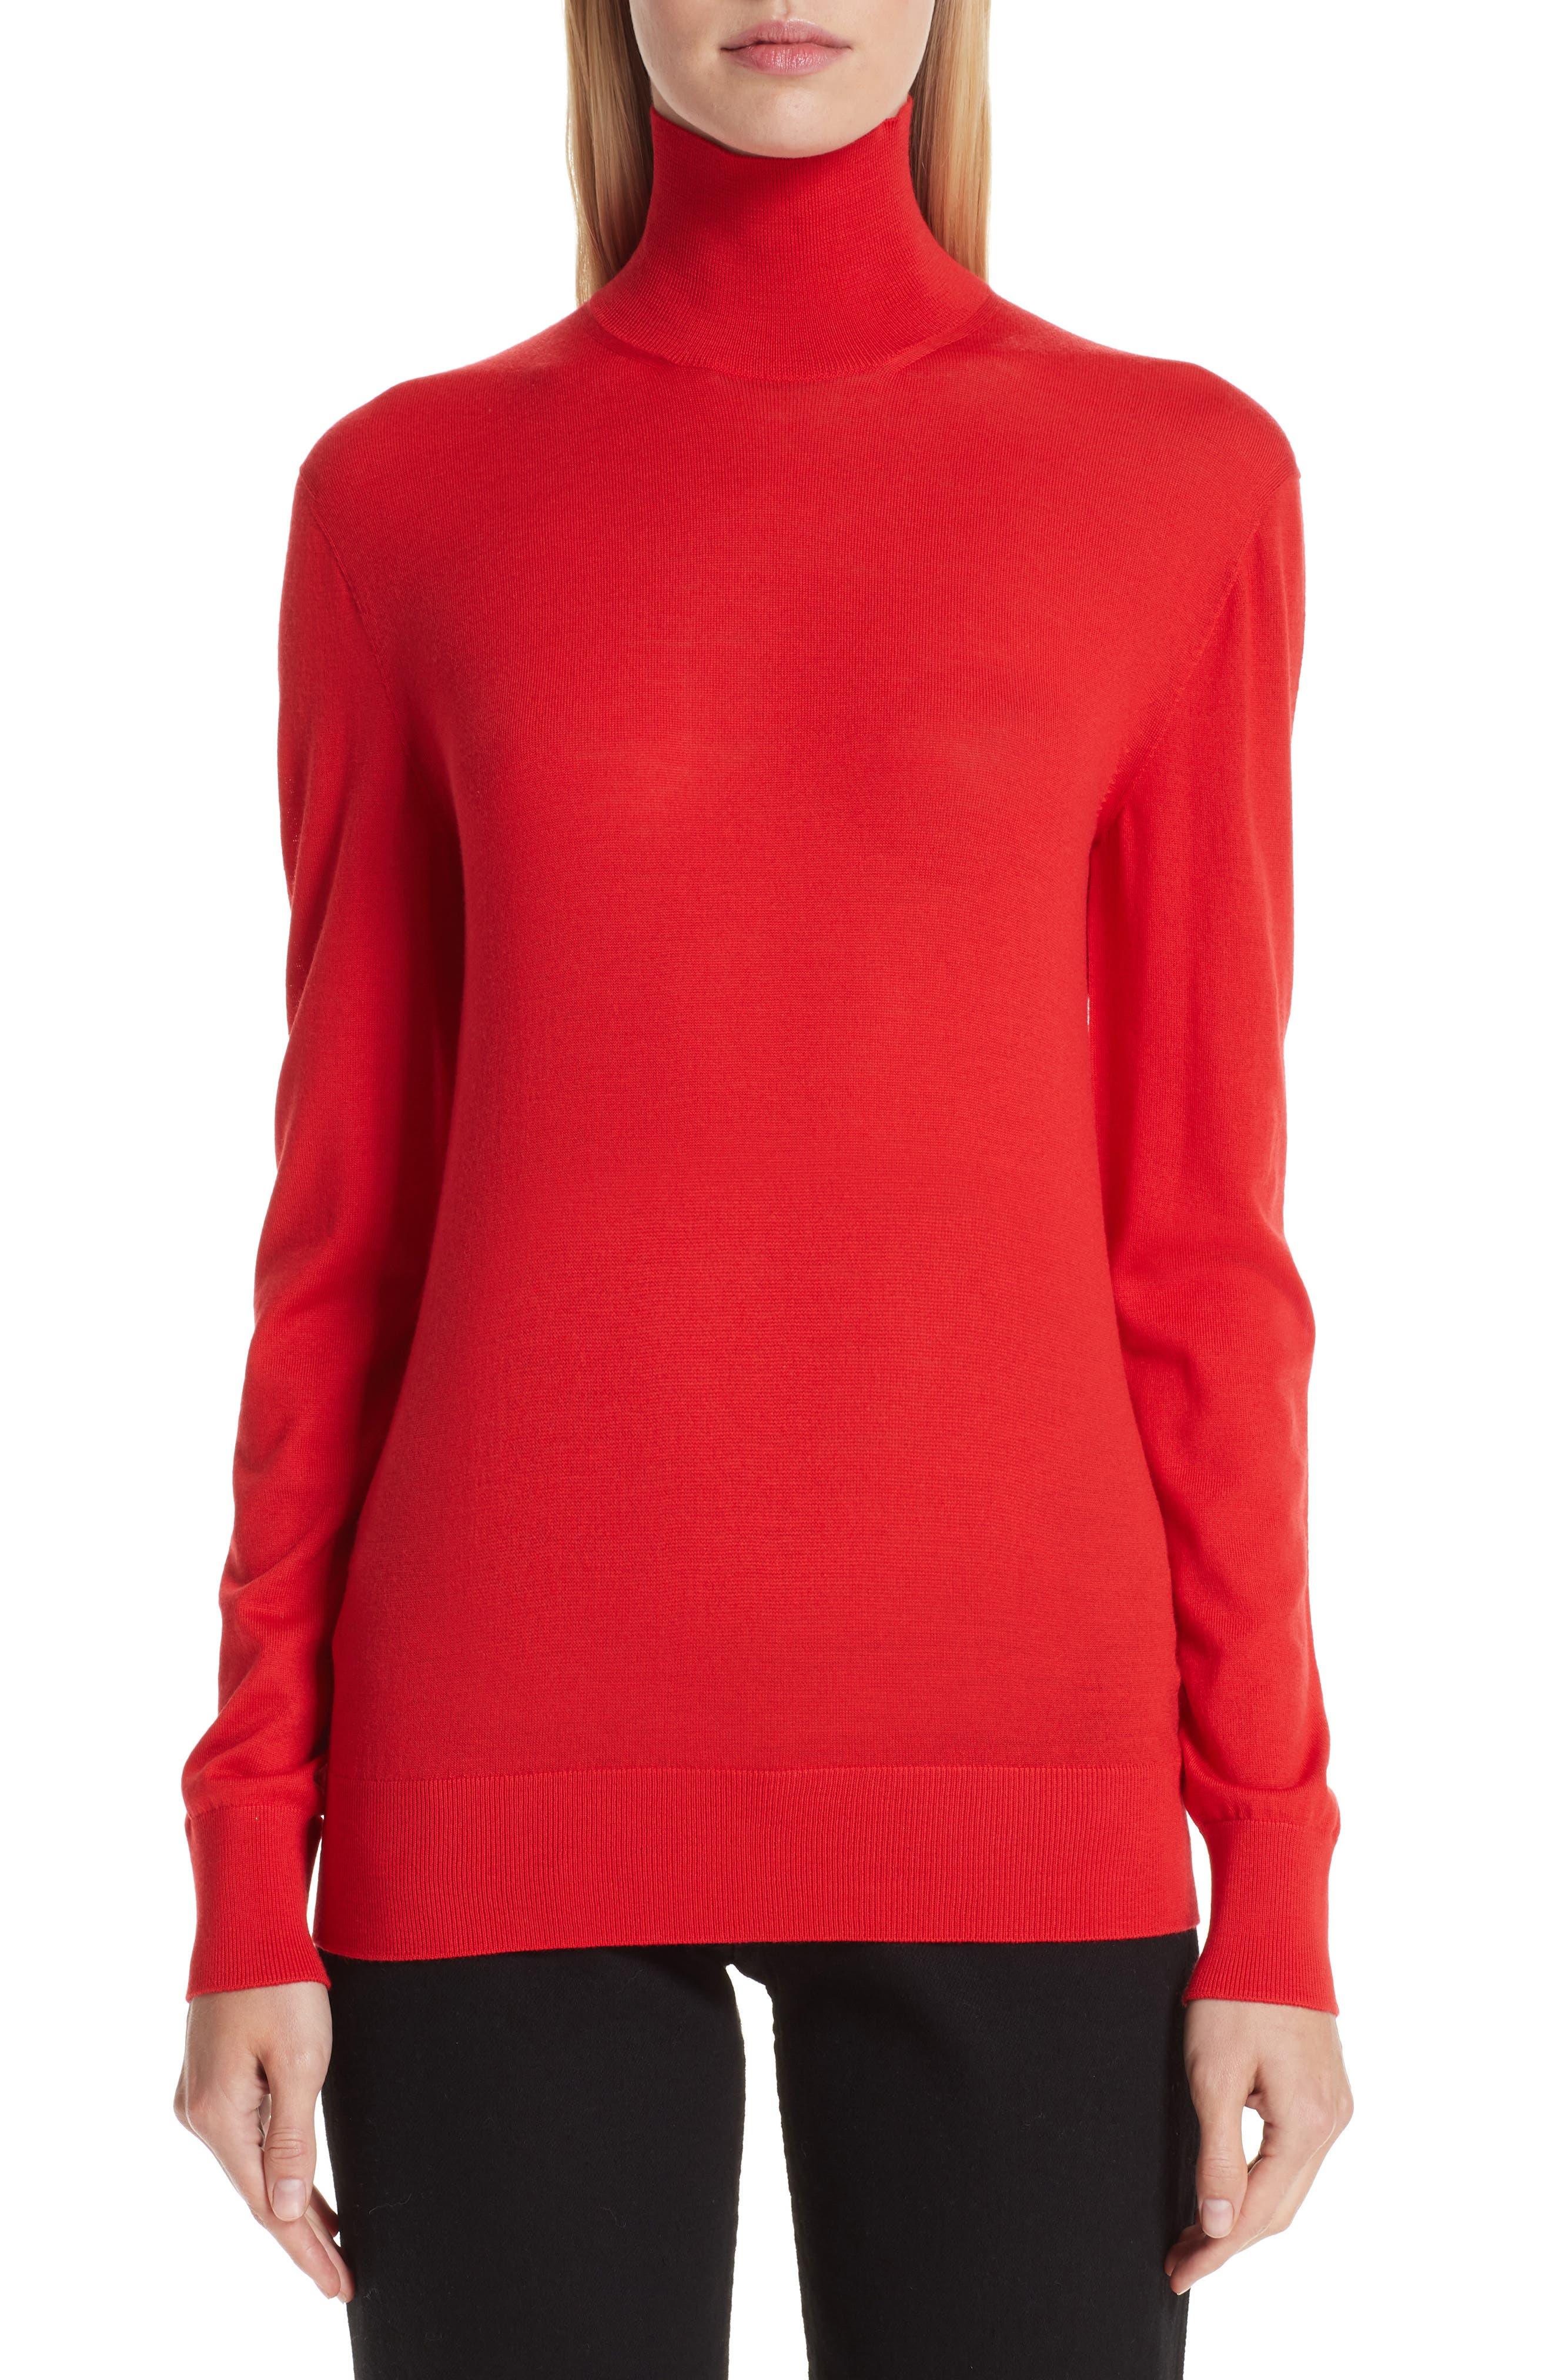 KWAIDAN EDITIONS MERINO WOOL TURTLENECK SWEATER